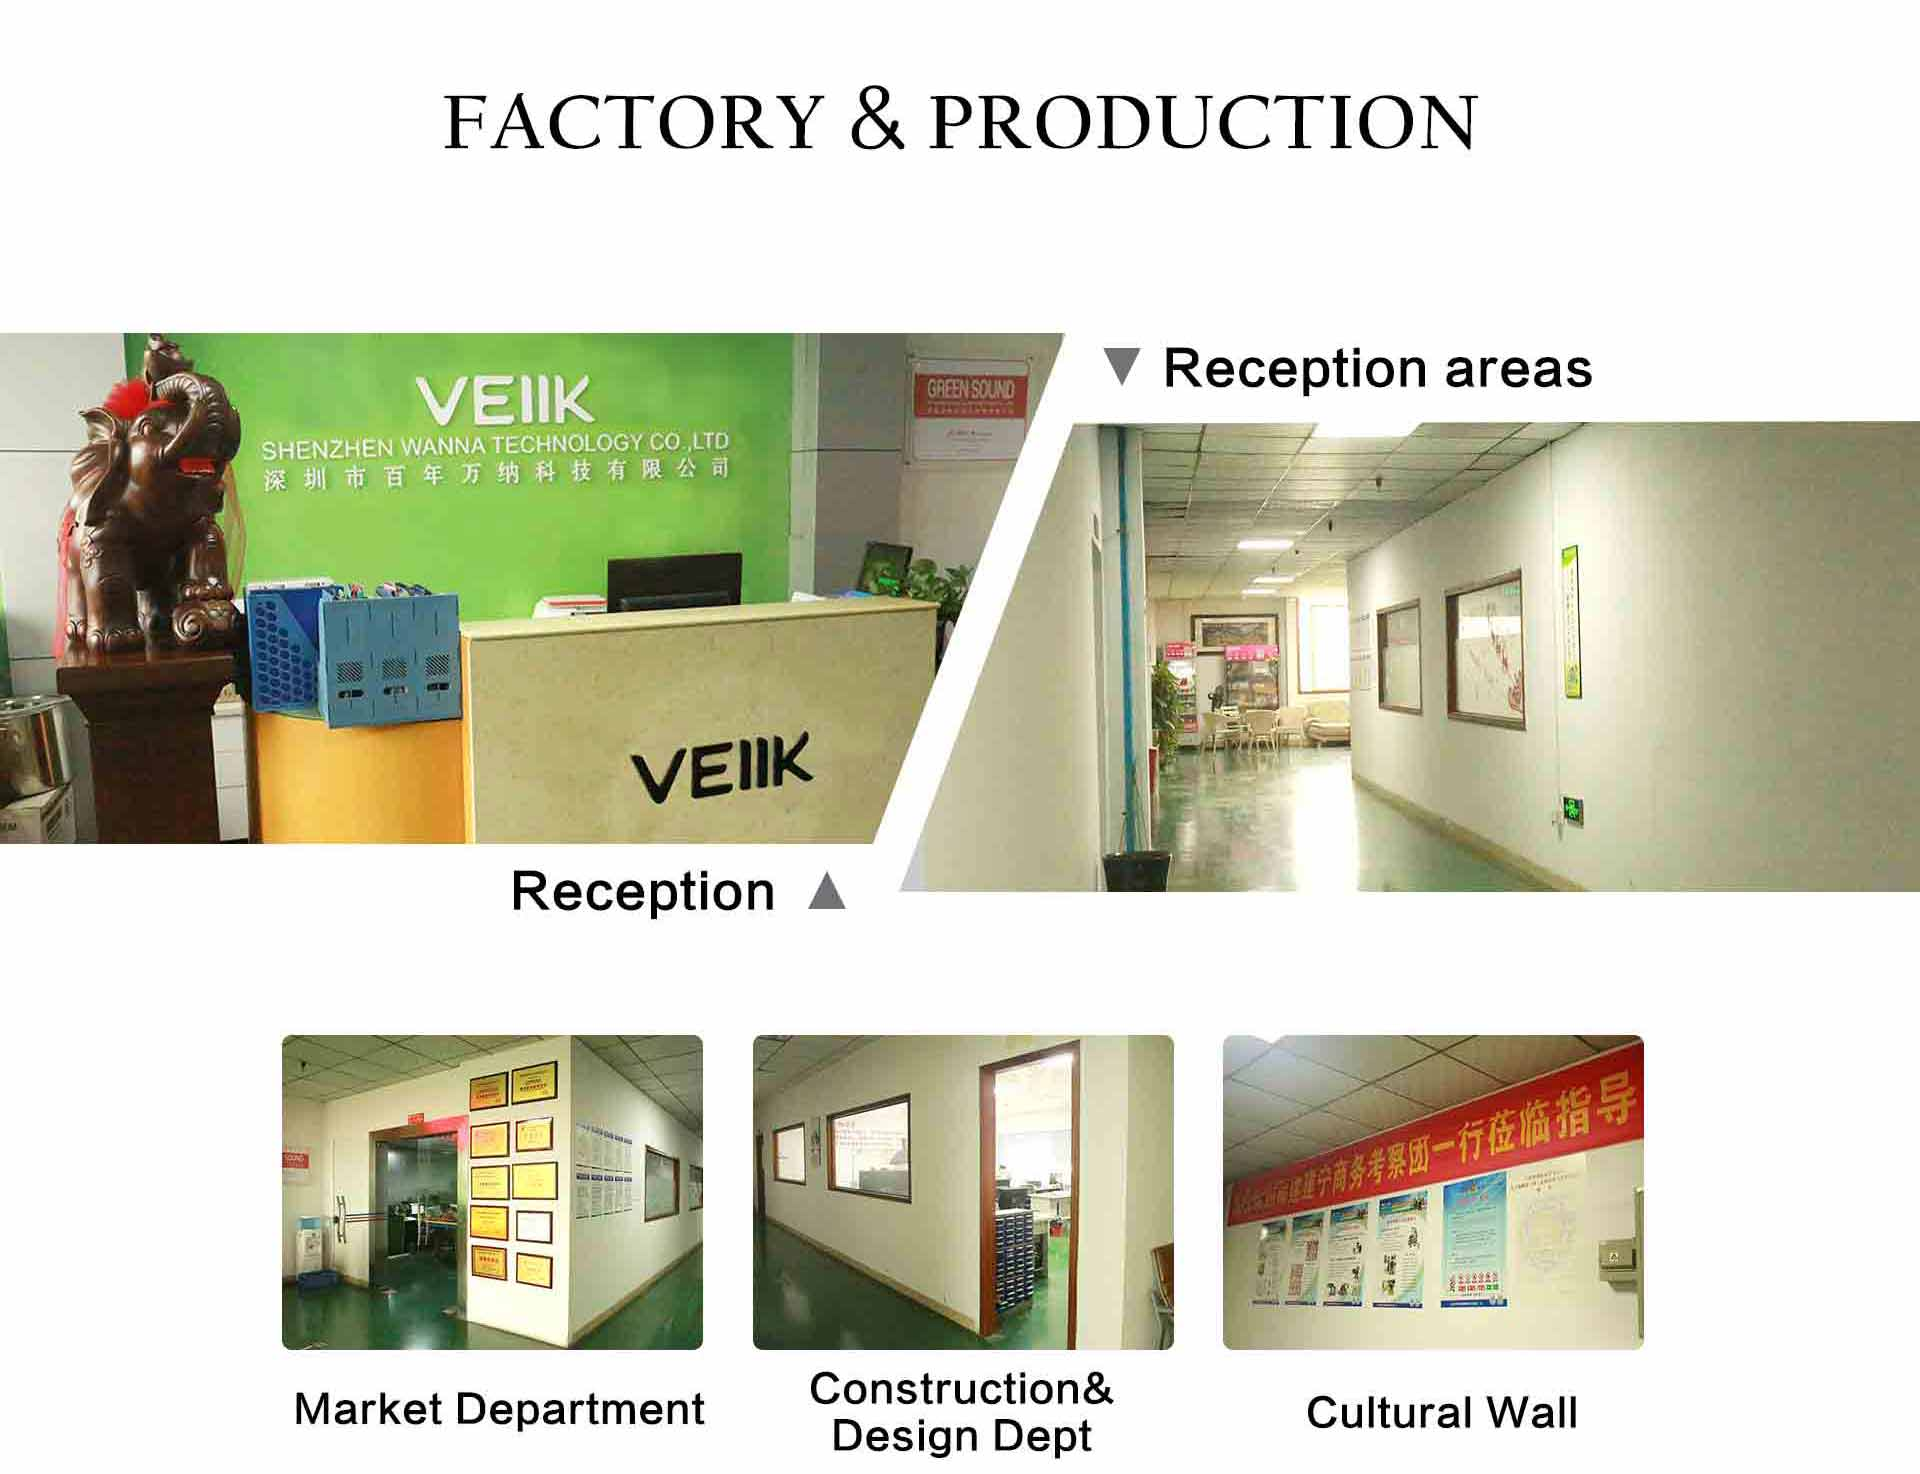 veiik factory & production